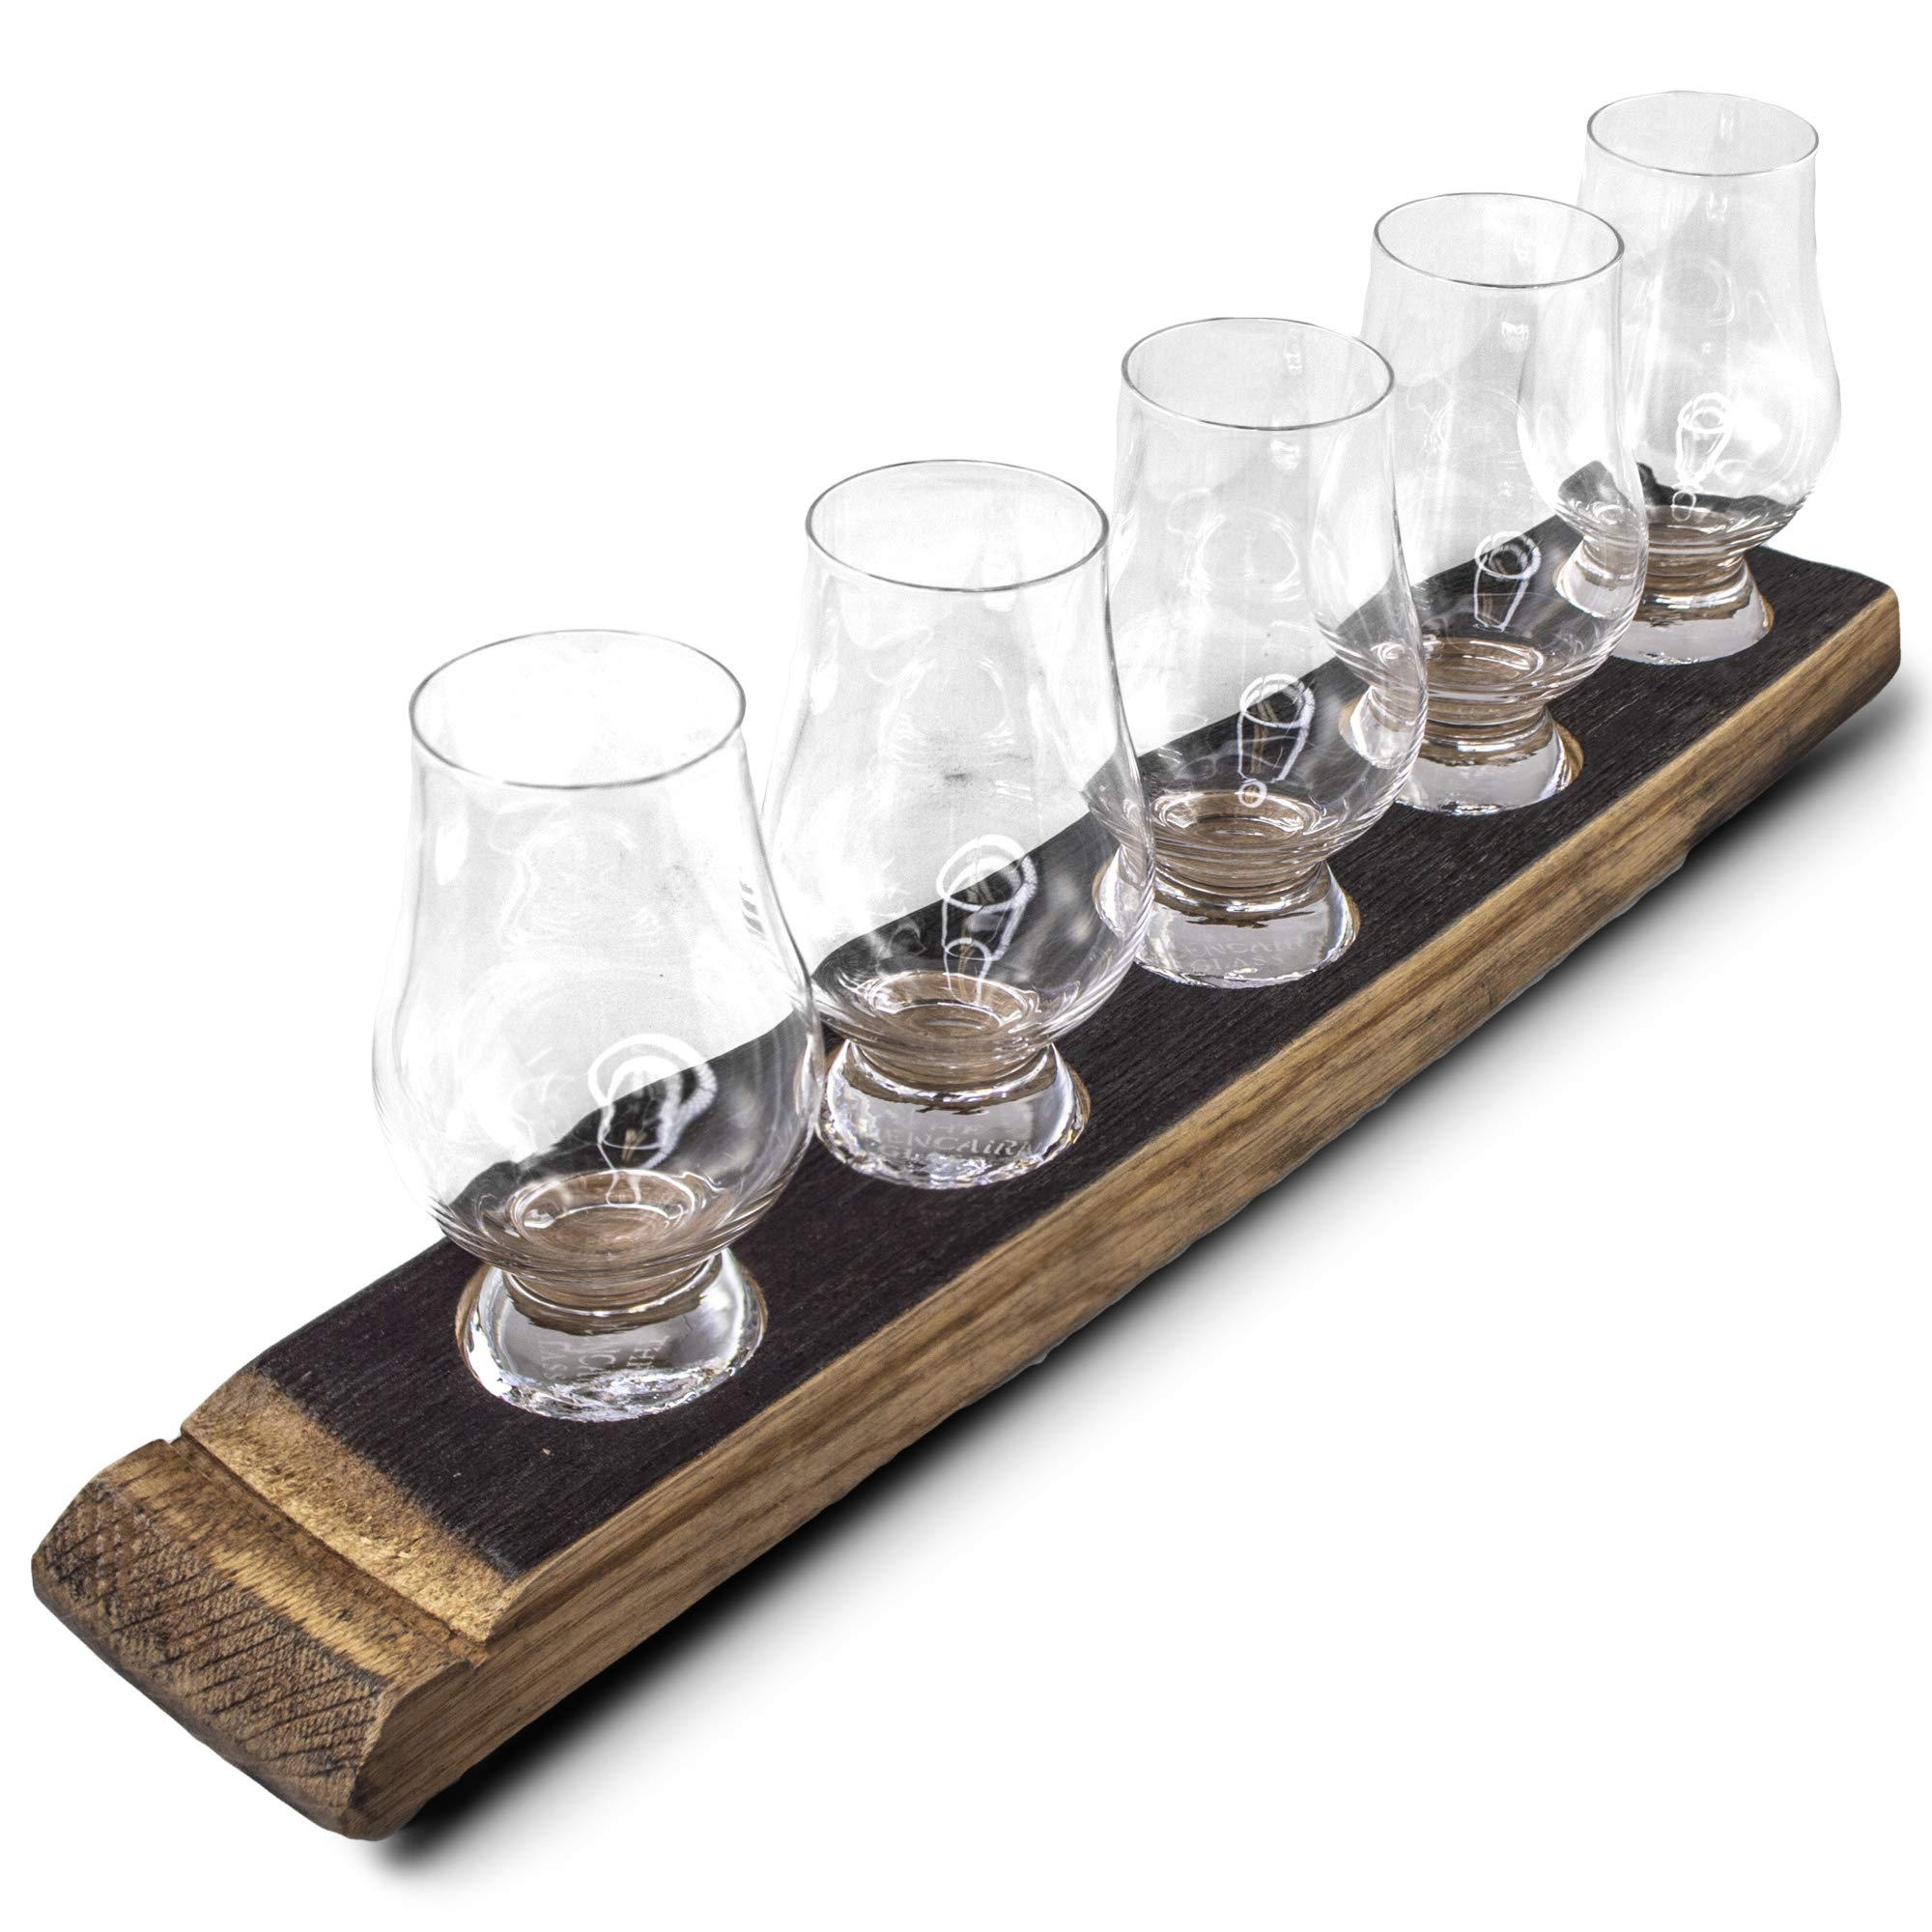 Briar And Oak Barrel Stave Whiskey Flight Tray - Charred Top With 5 Glencairn Whiskey Glasses - Made In The USA